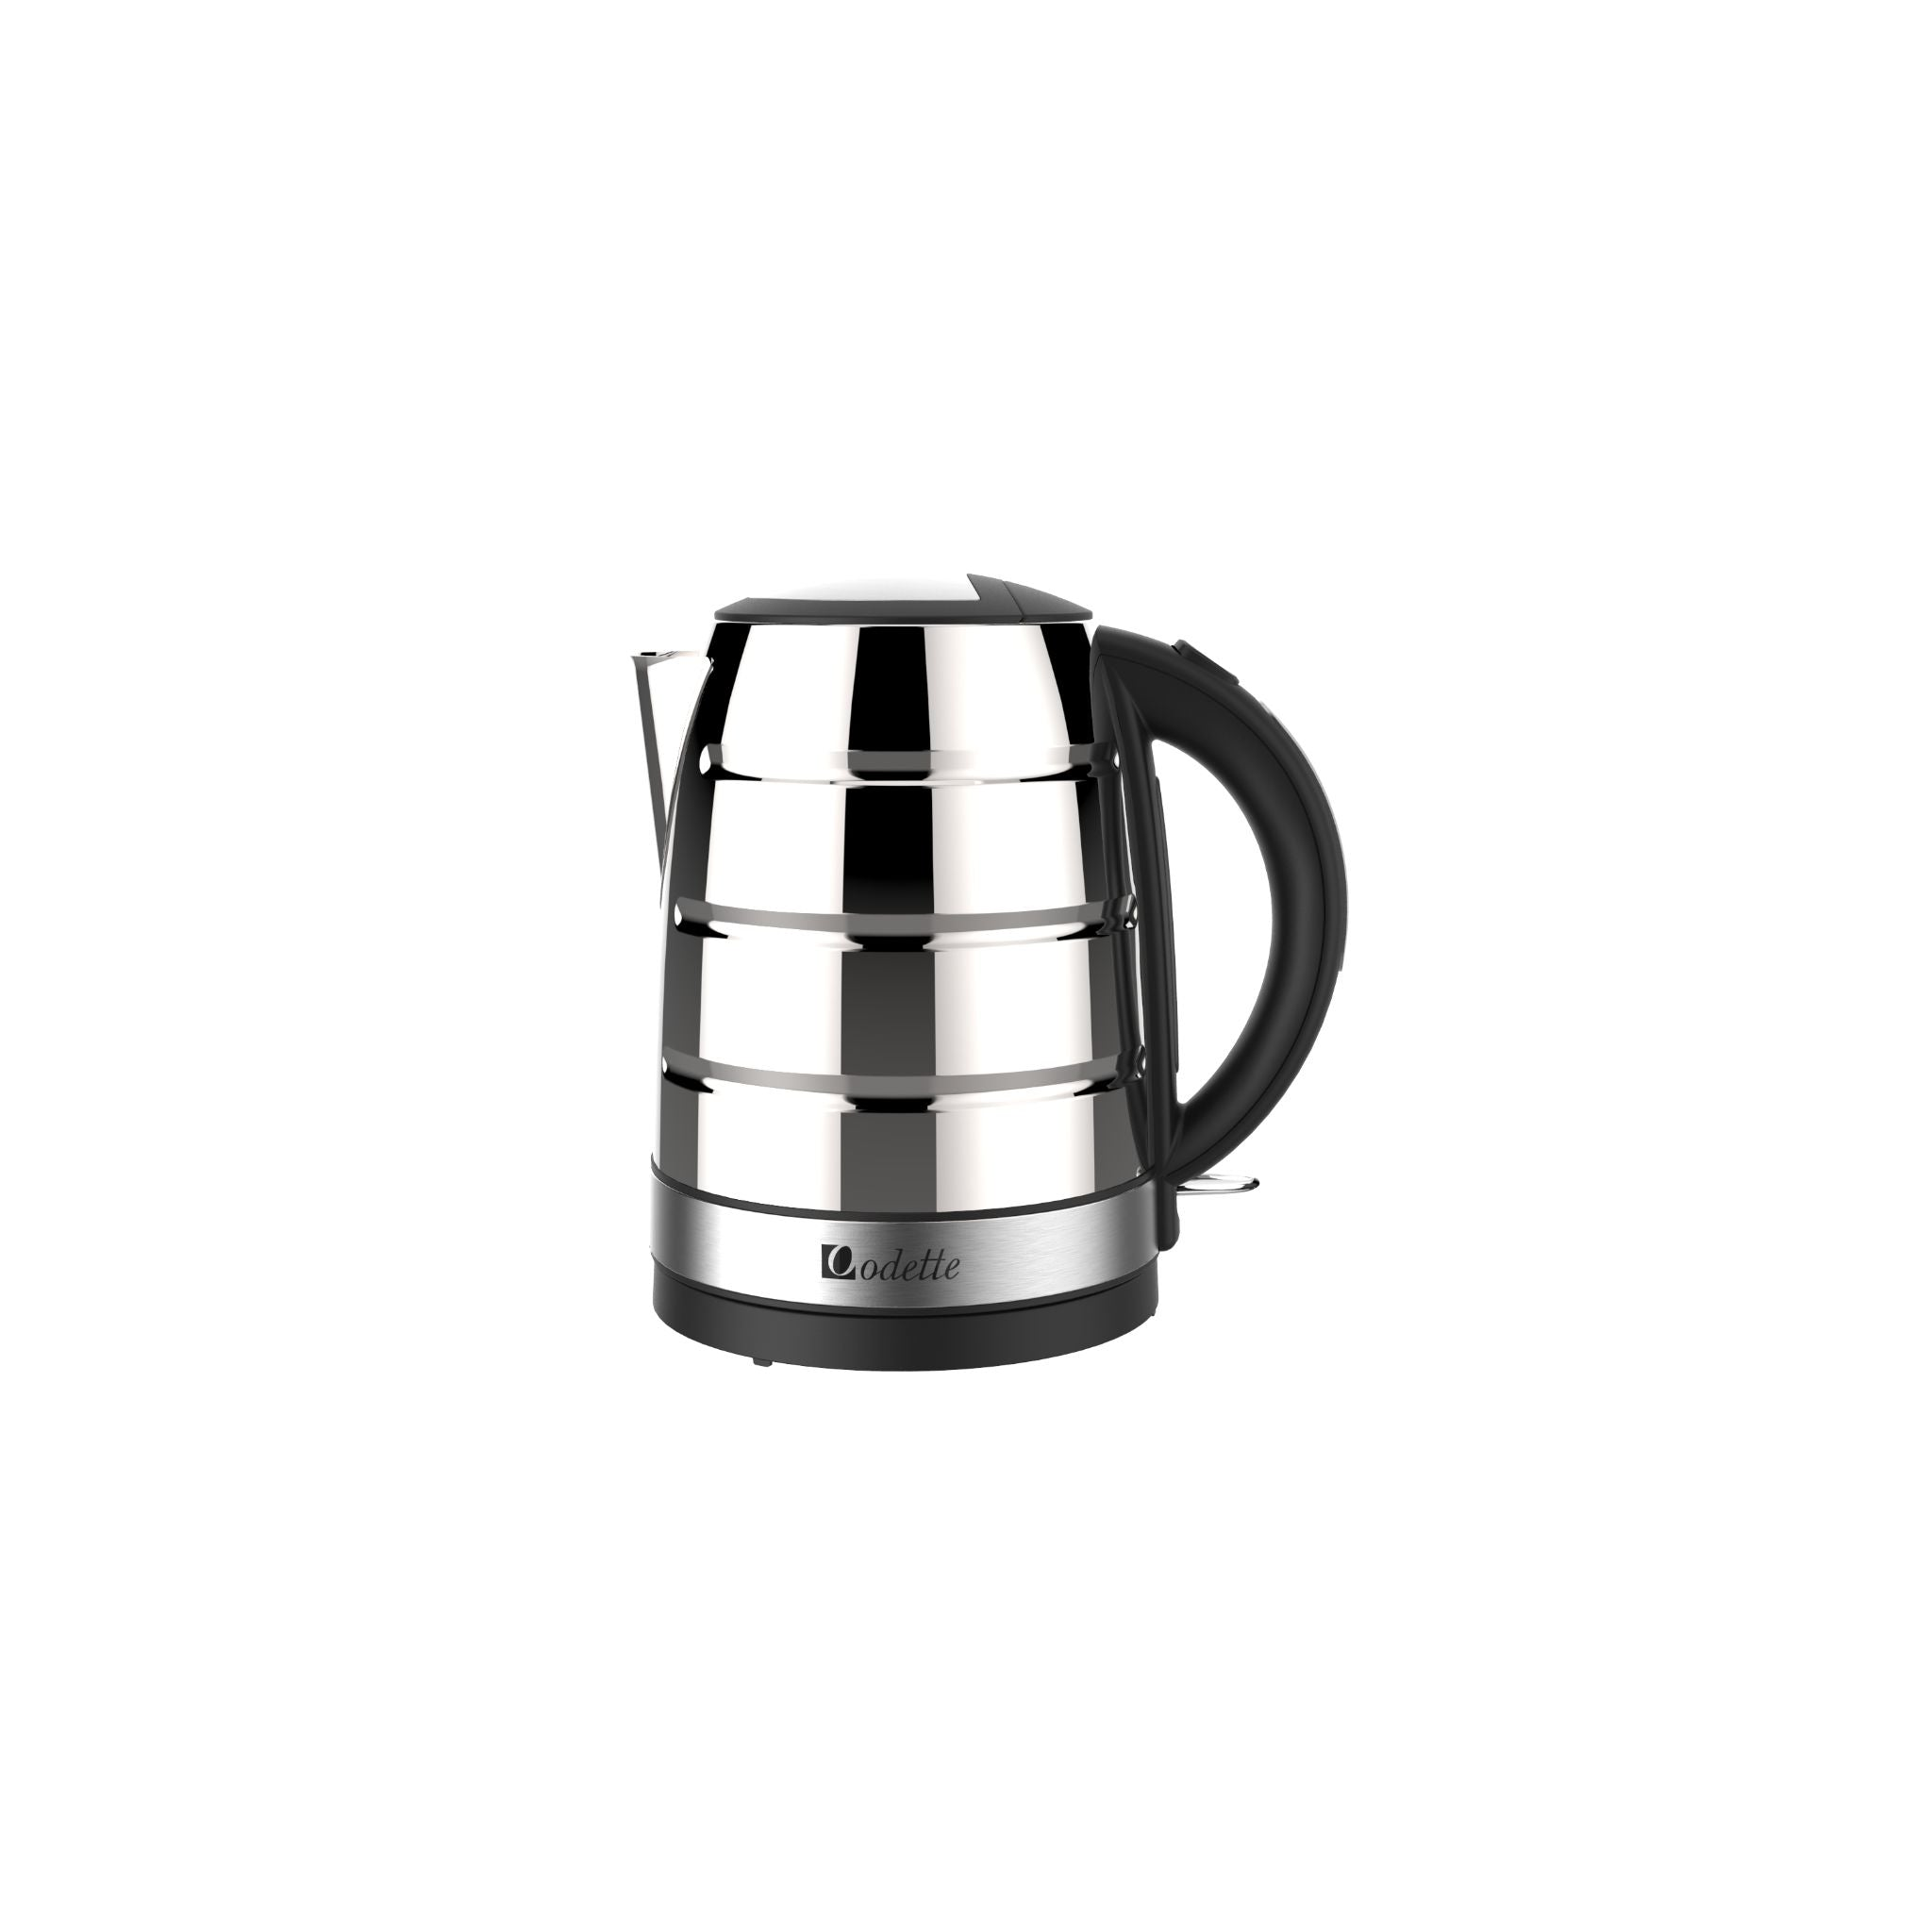 Odette Deauville 1.7L Stainless Steel Electric Kettle - Polished Stainless Steel